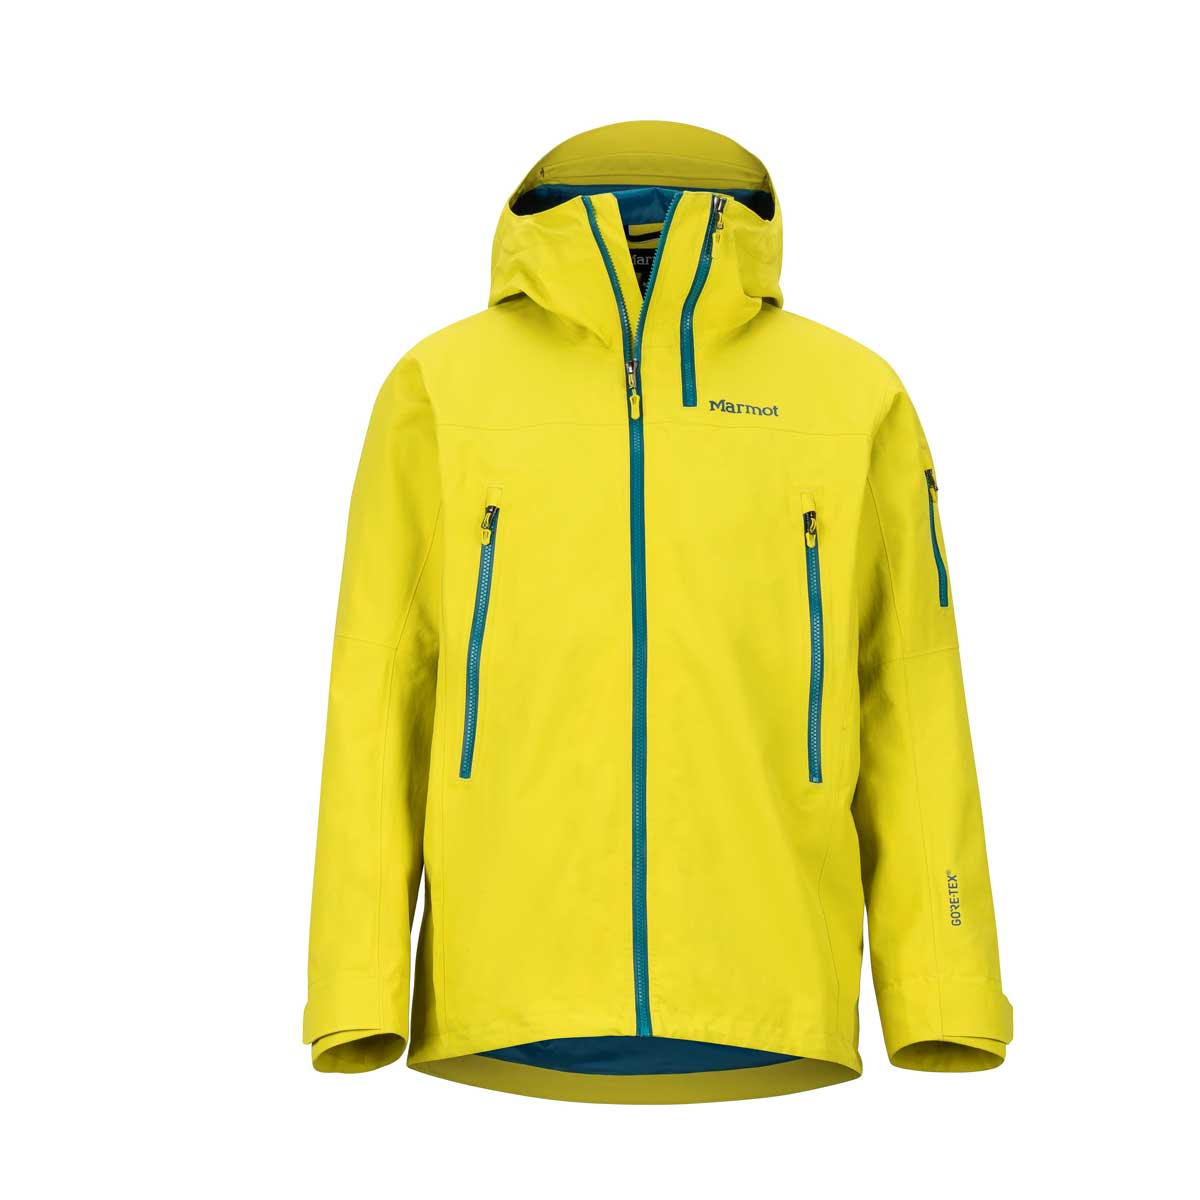 Marmot Men's Freerider Jacket in Citronelle